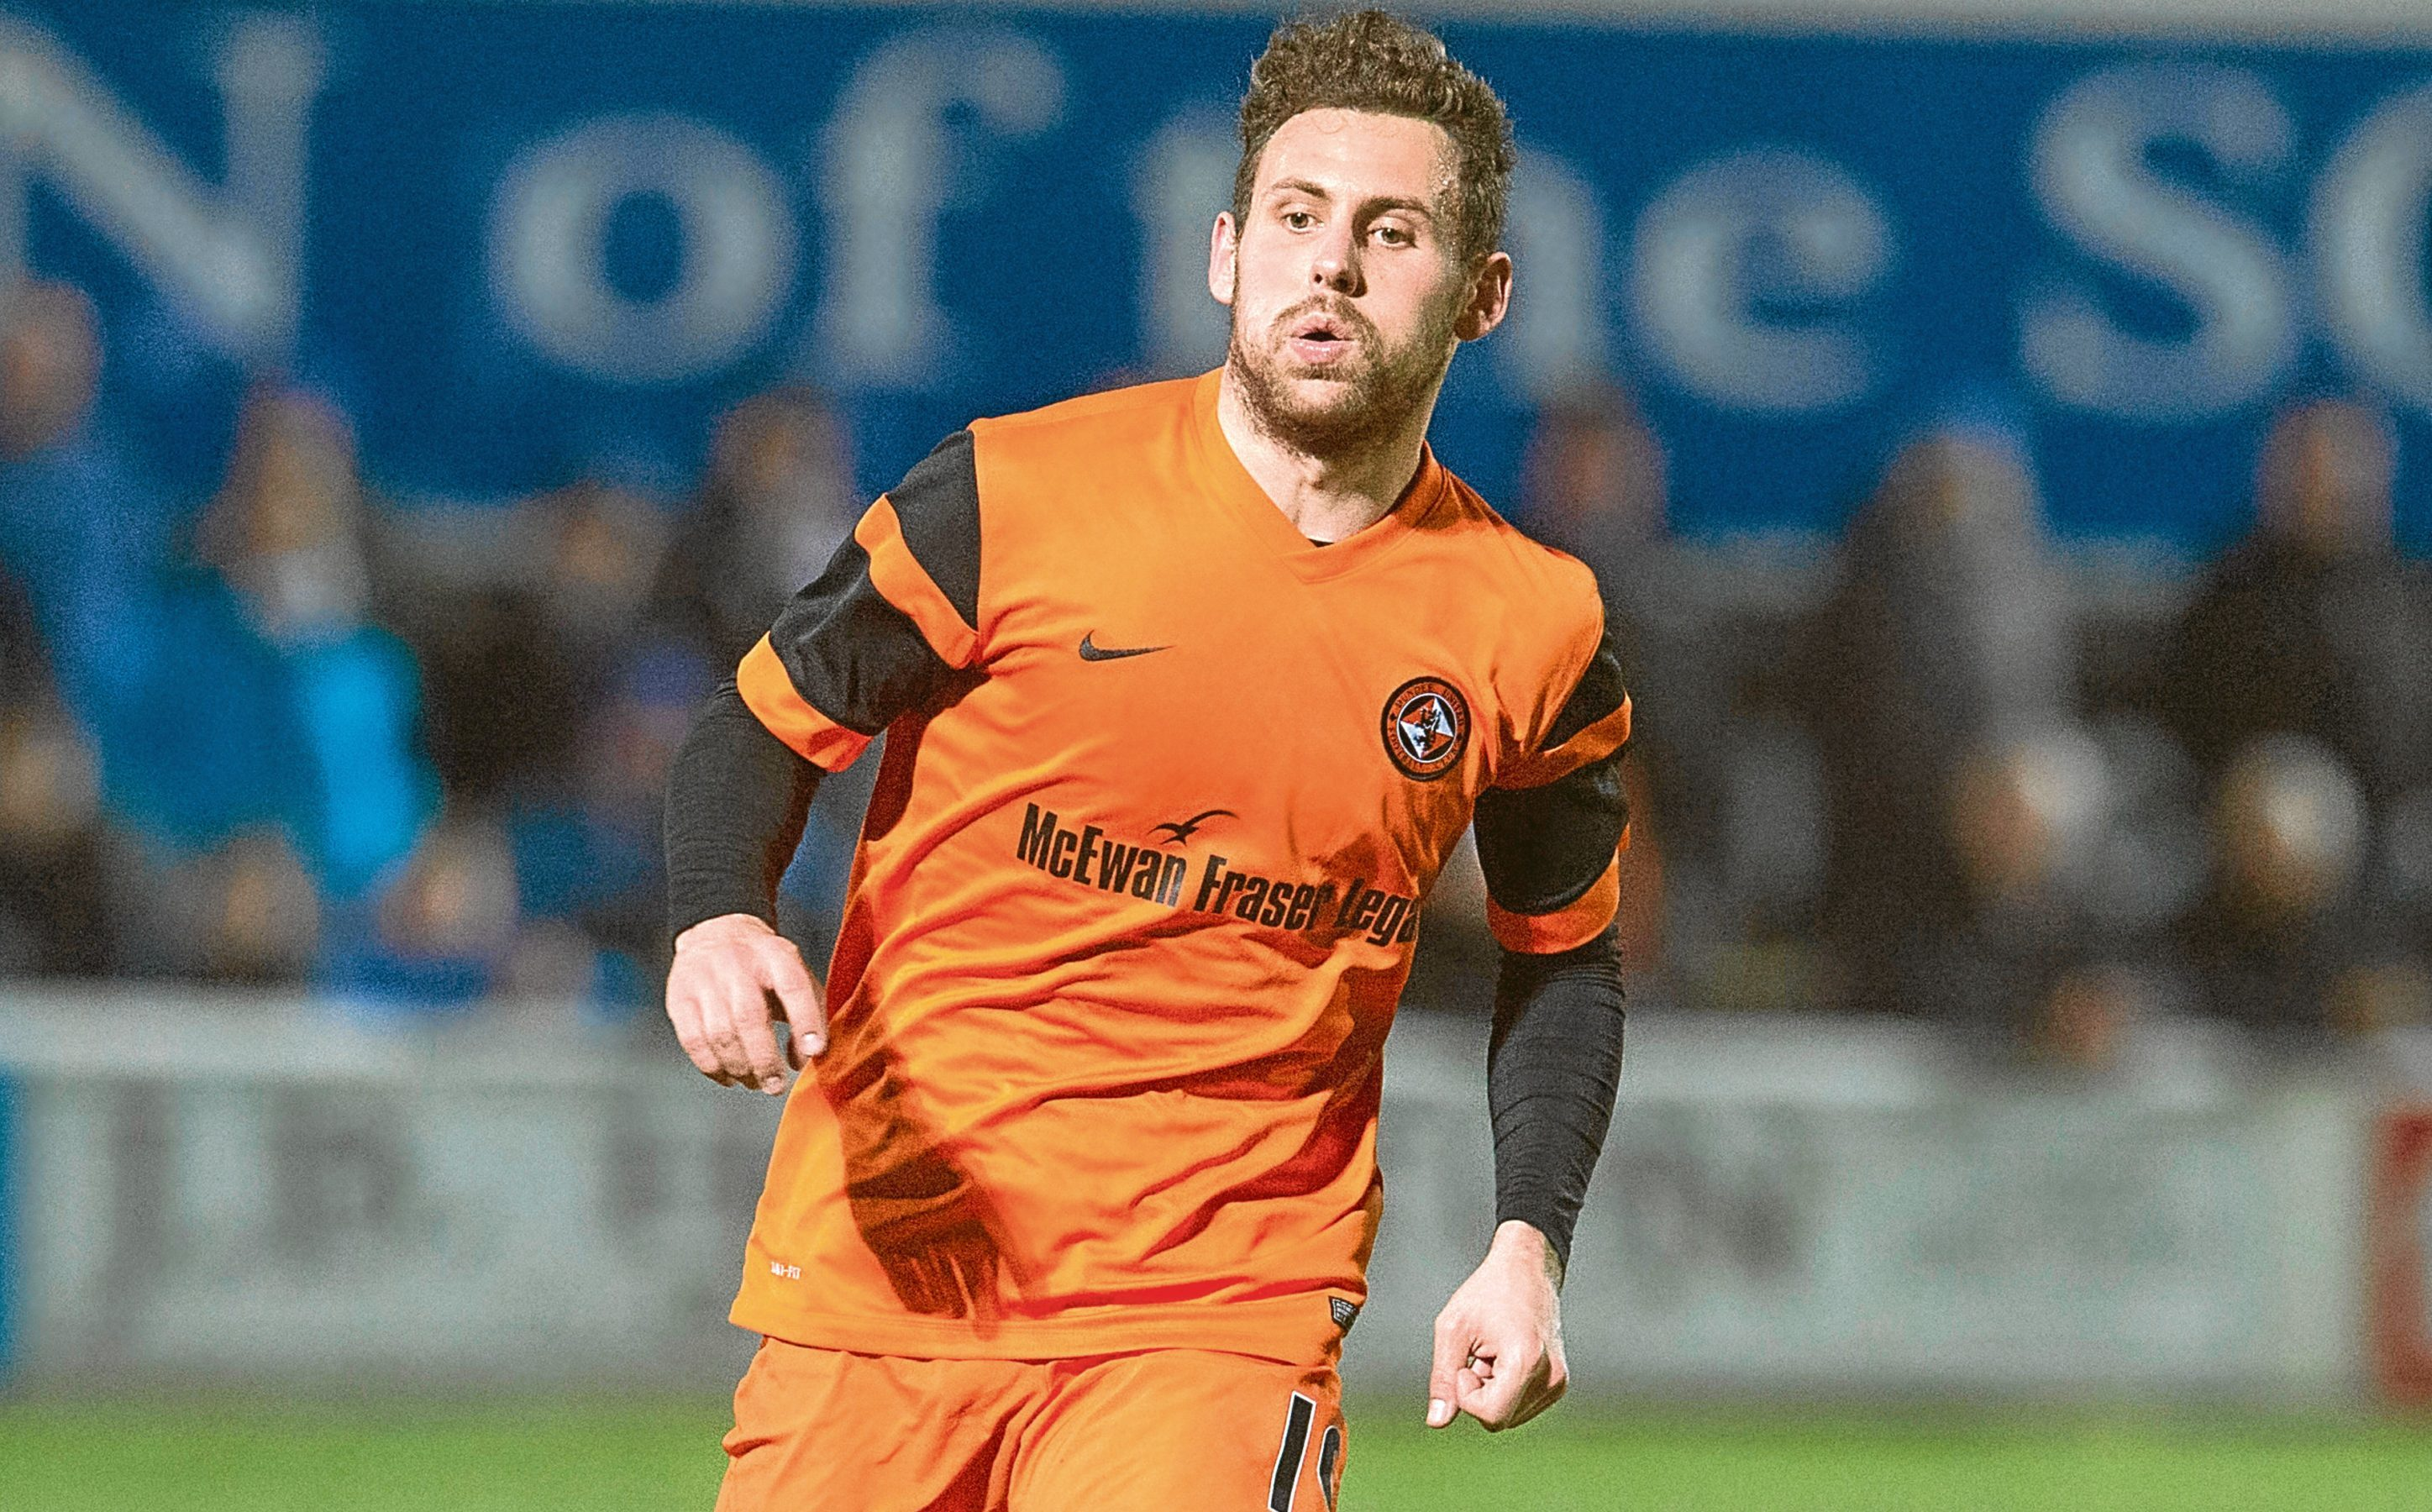 Tony Andreu and Thomas Mikkelsen picked up knocks in the 2-2 draw with Dumbarton on Saturday but both should be fit for this weekend.